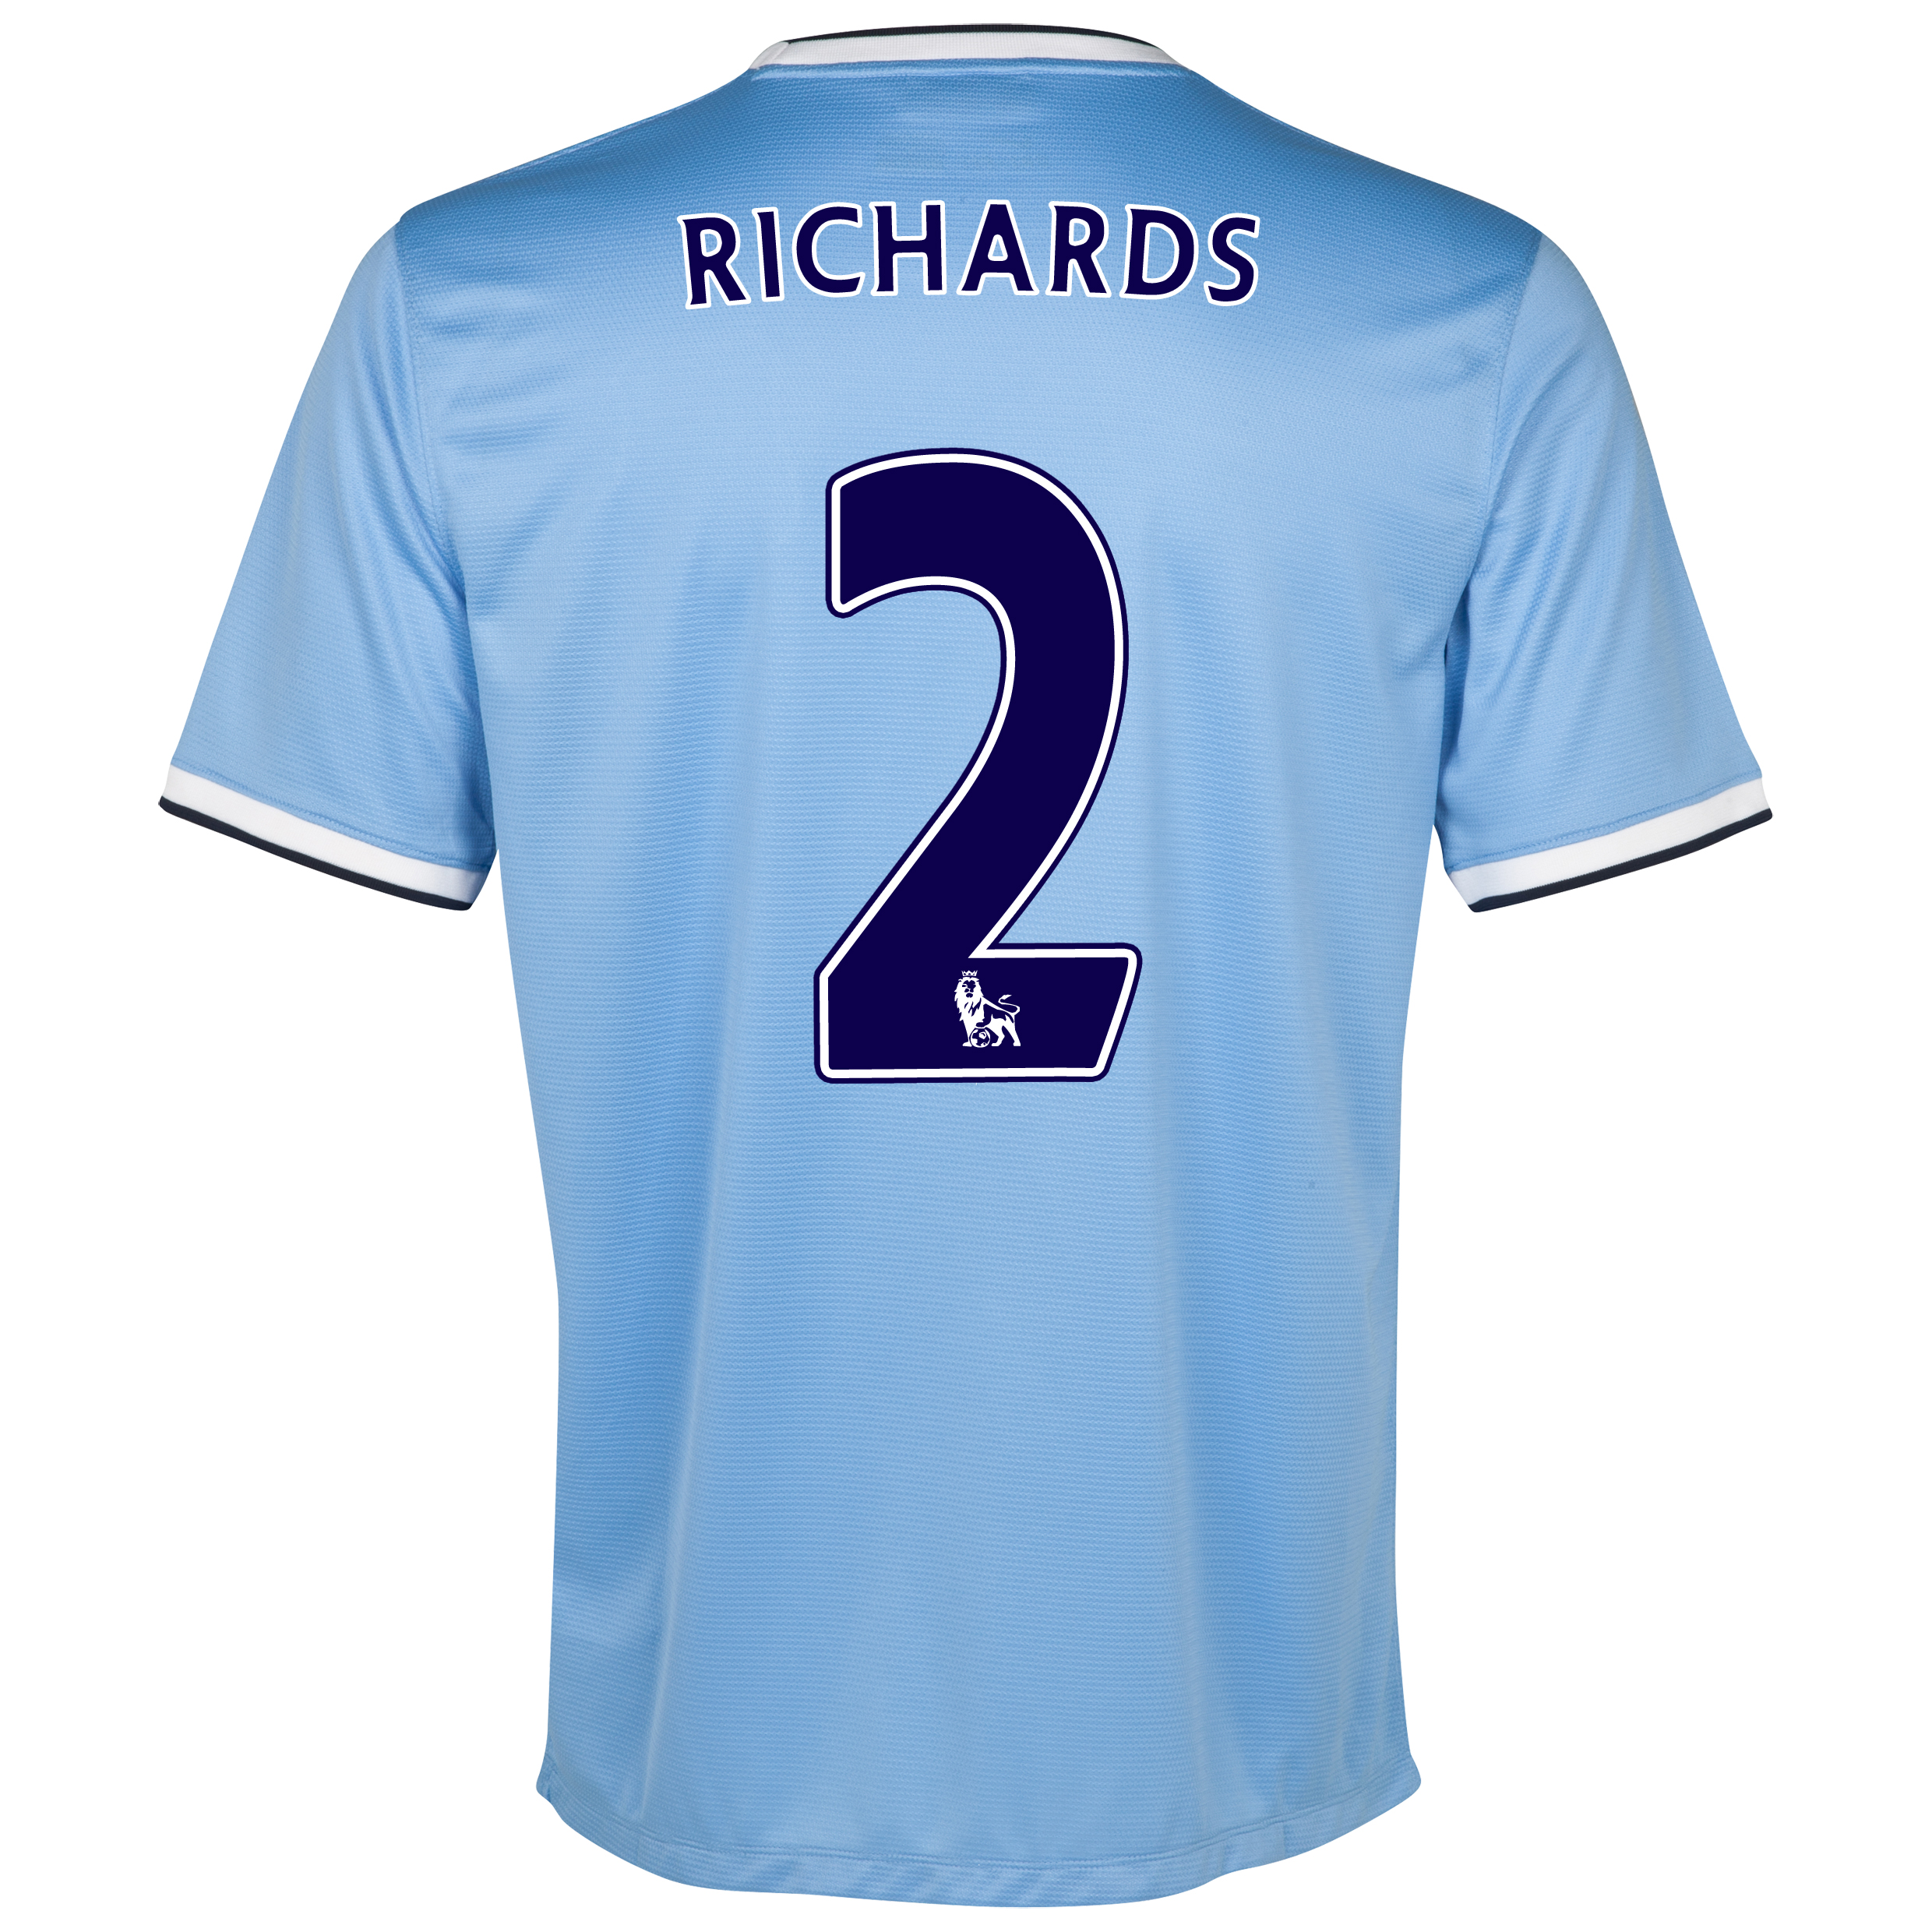 Richards hero shirts